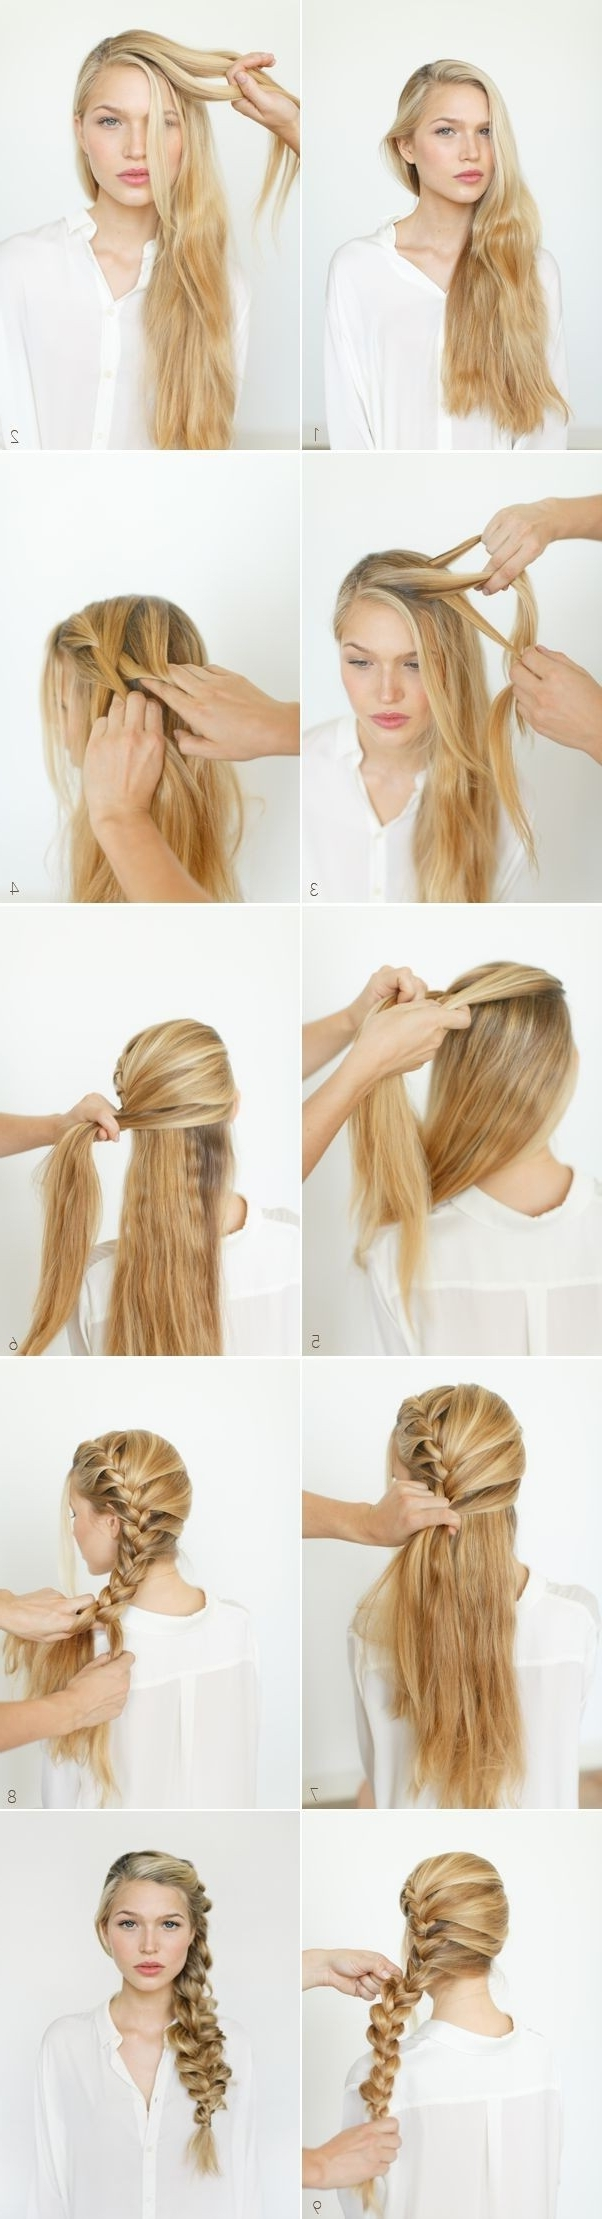 Most Popular Long Ponytails With Side Braid Throughout Stepstep Hairstyles For Long Hair: Long Hairstyles Ideas (View 12 of 20)